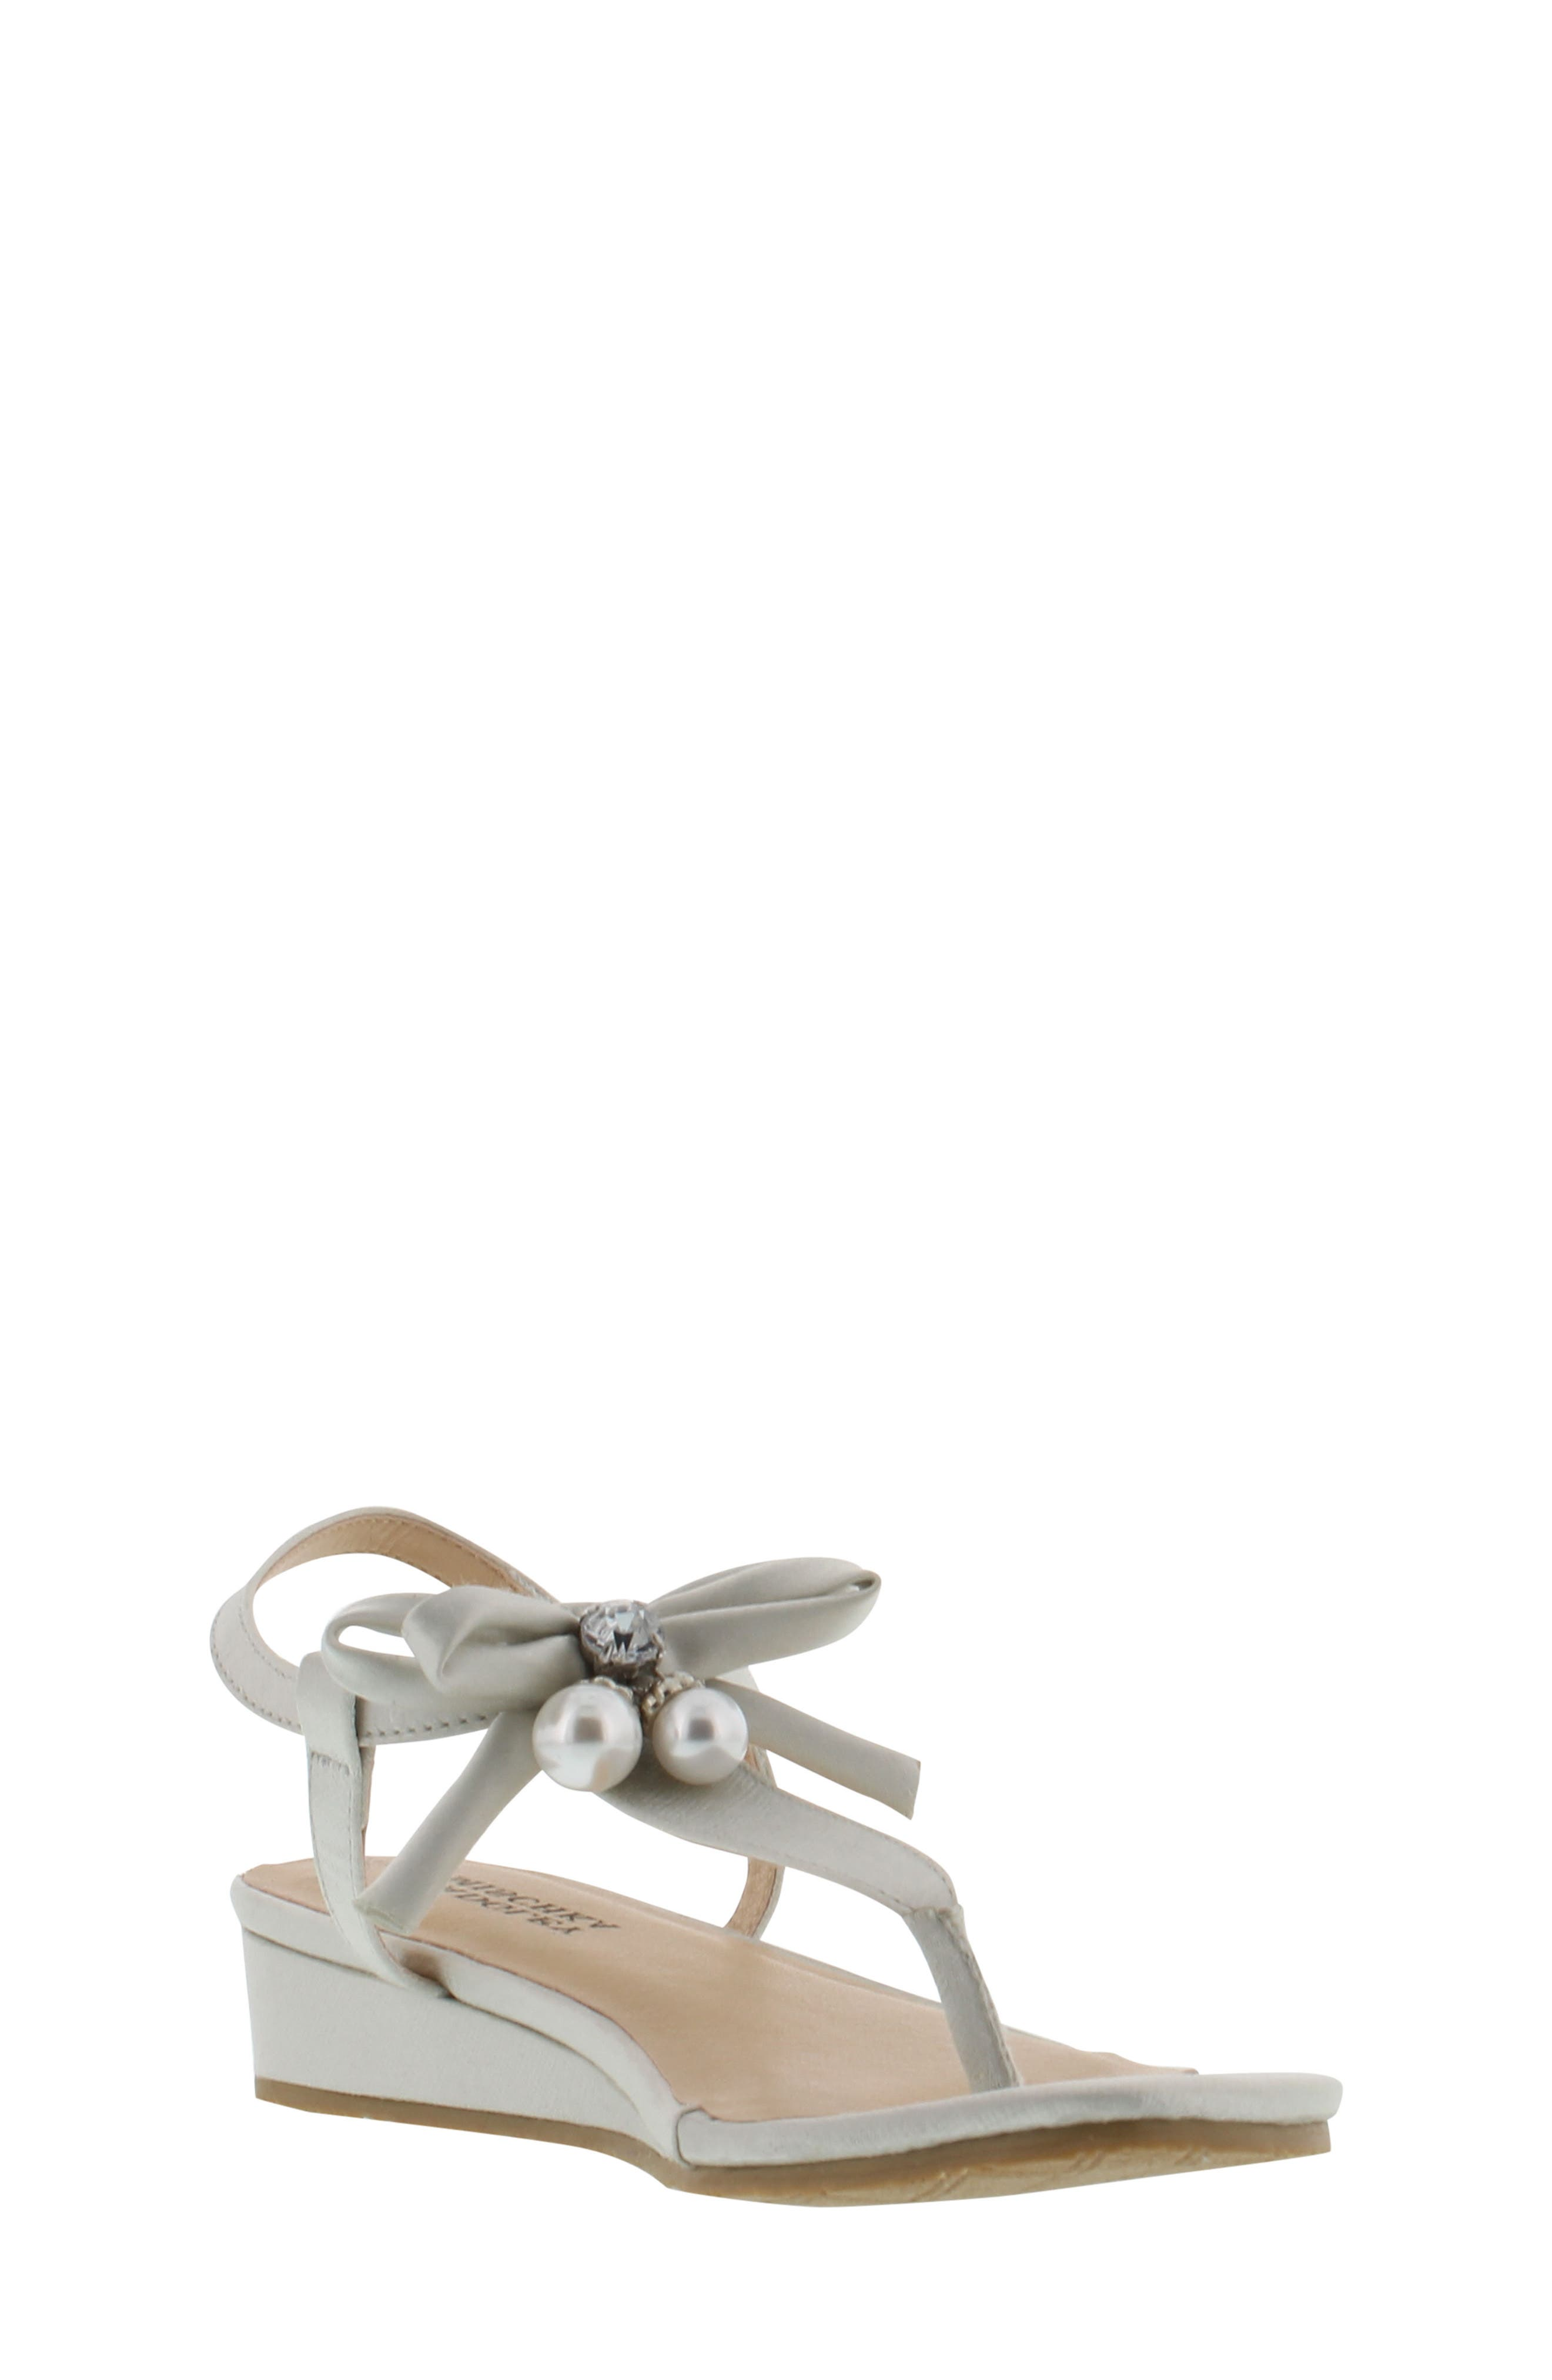 Badgley Mischka Talia Embellished Bow Sandal,                         Main,                         color, 040